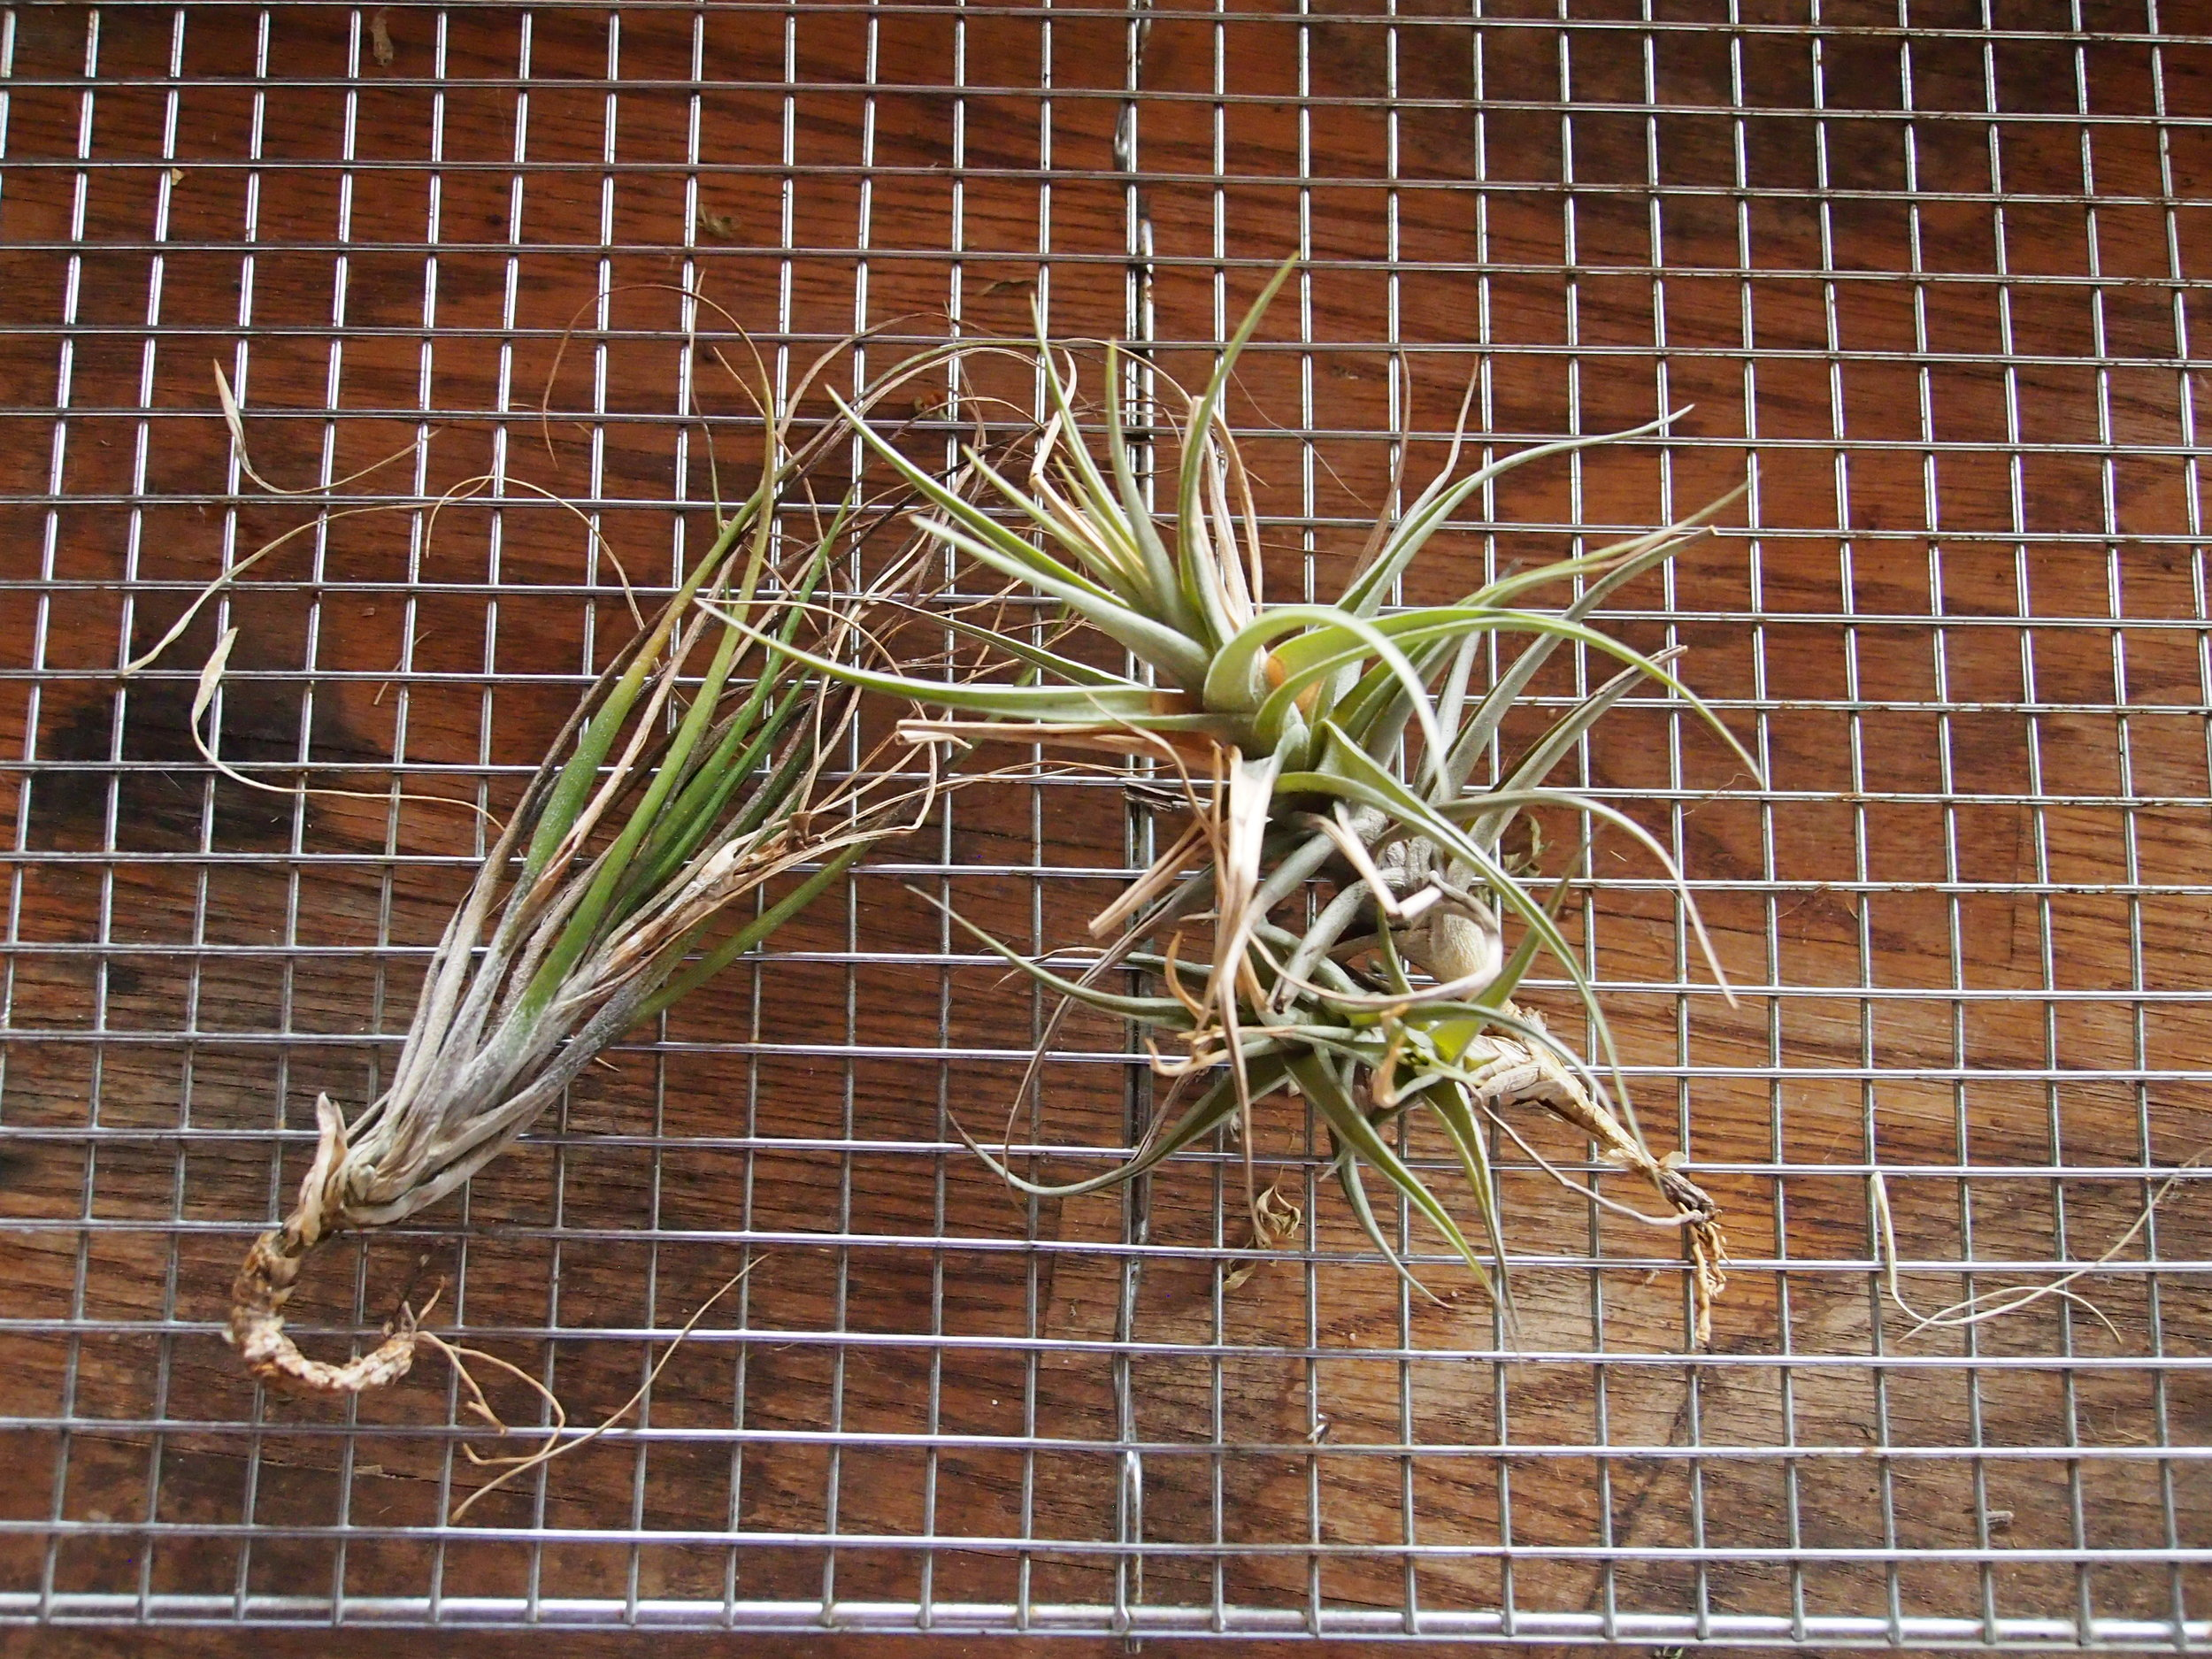 Scholium-Wines-Abe-Schoener-Air-Plants.jpg